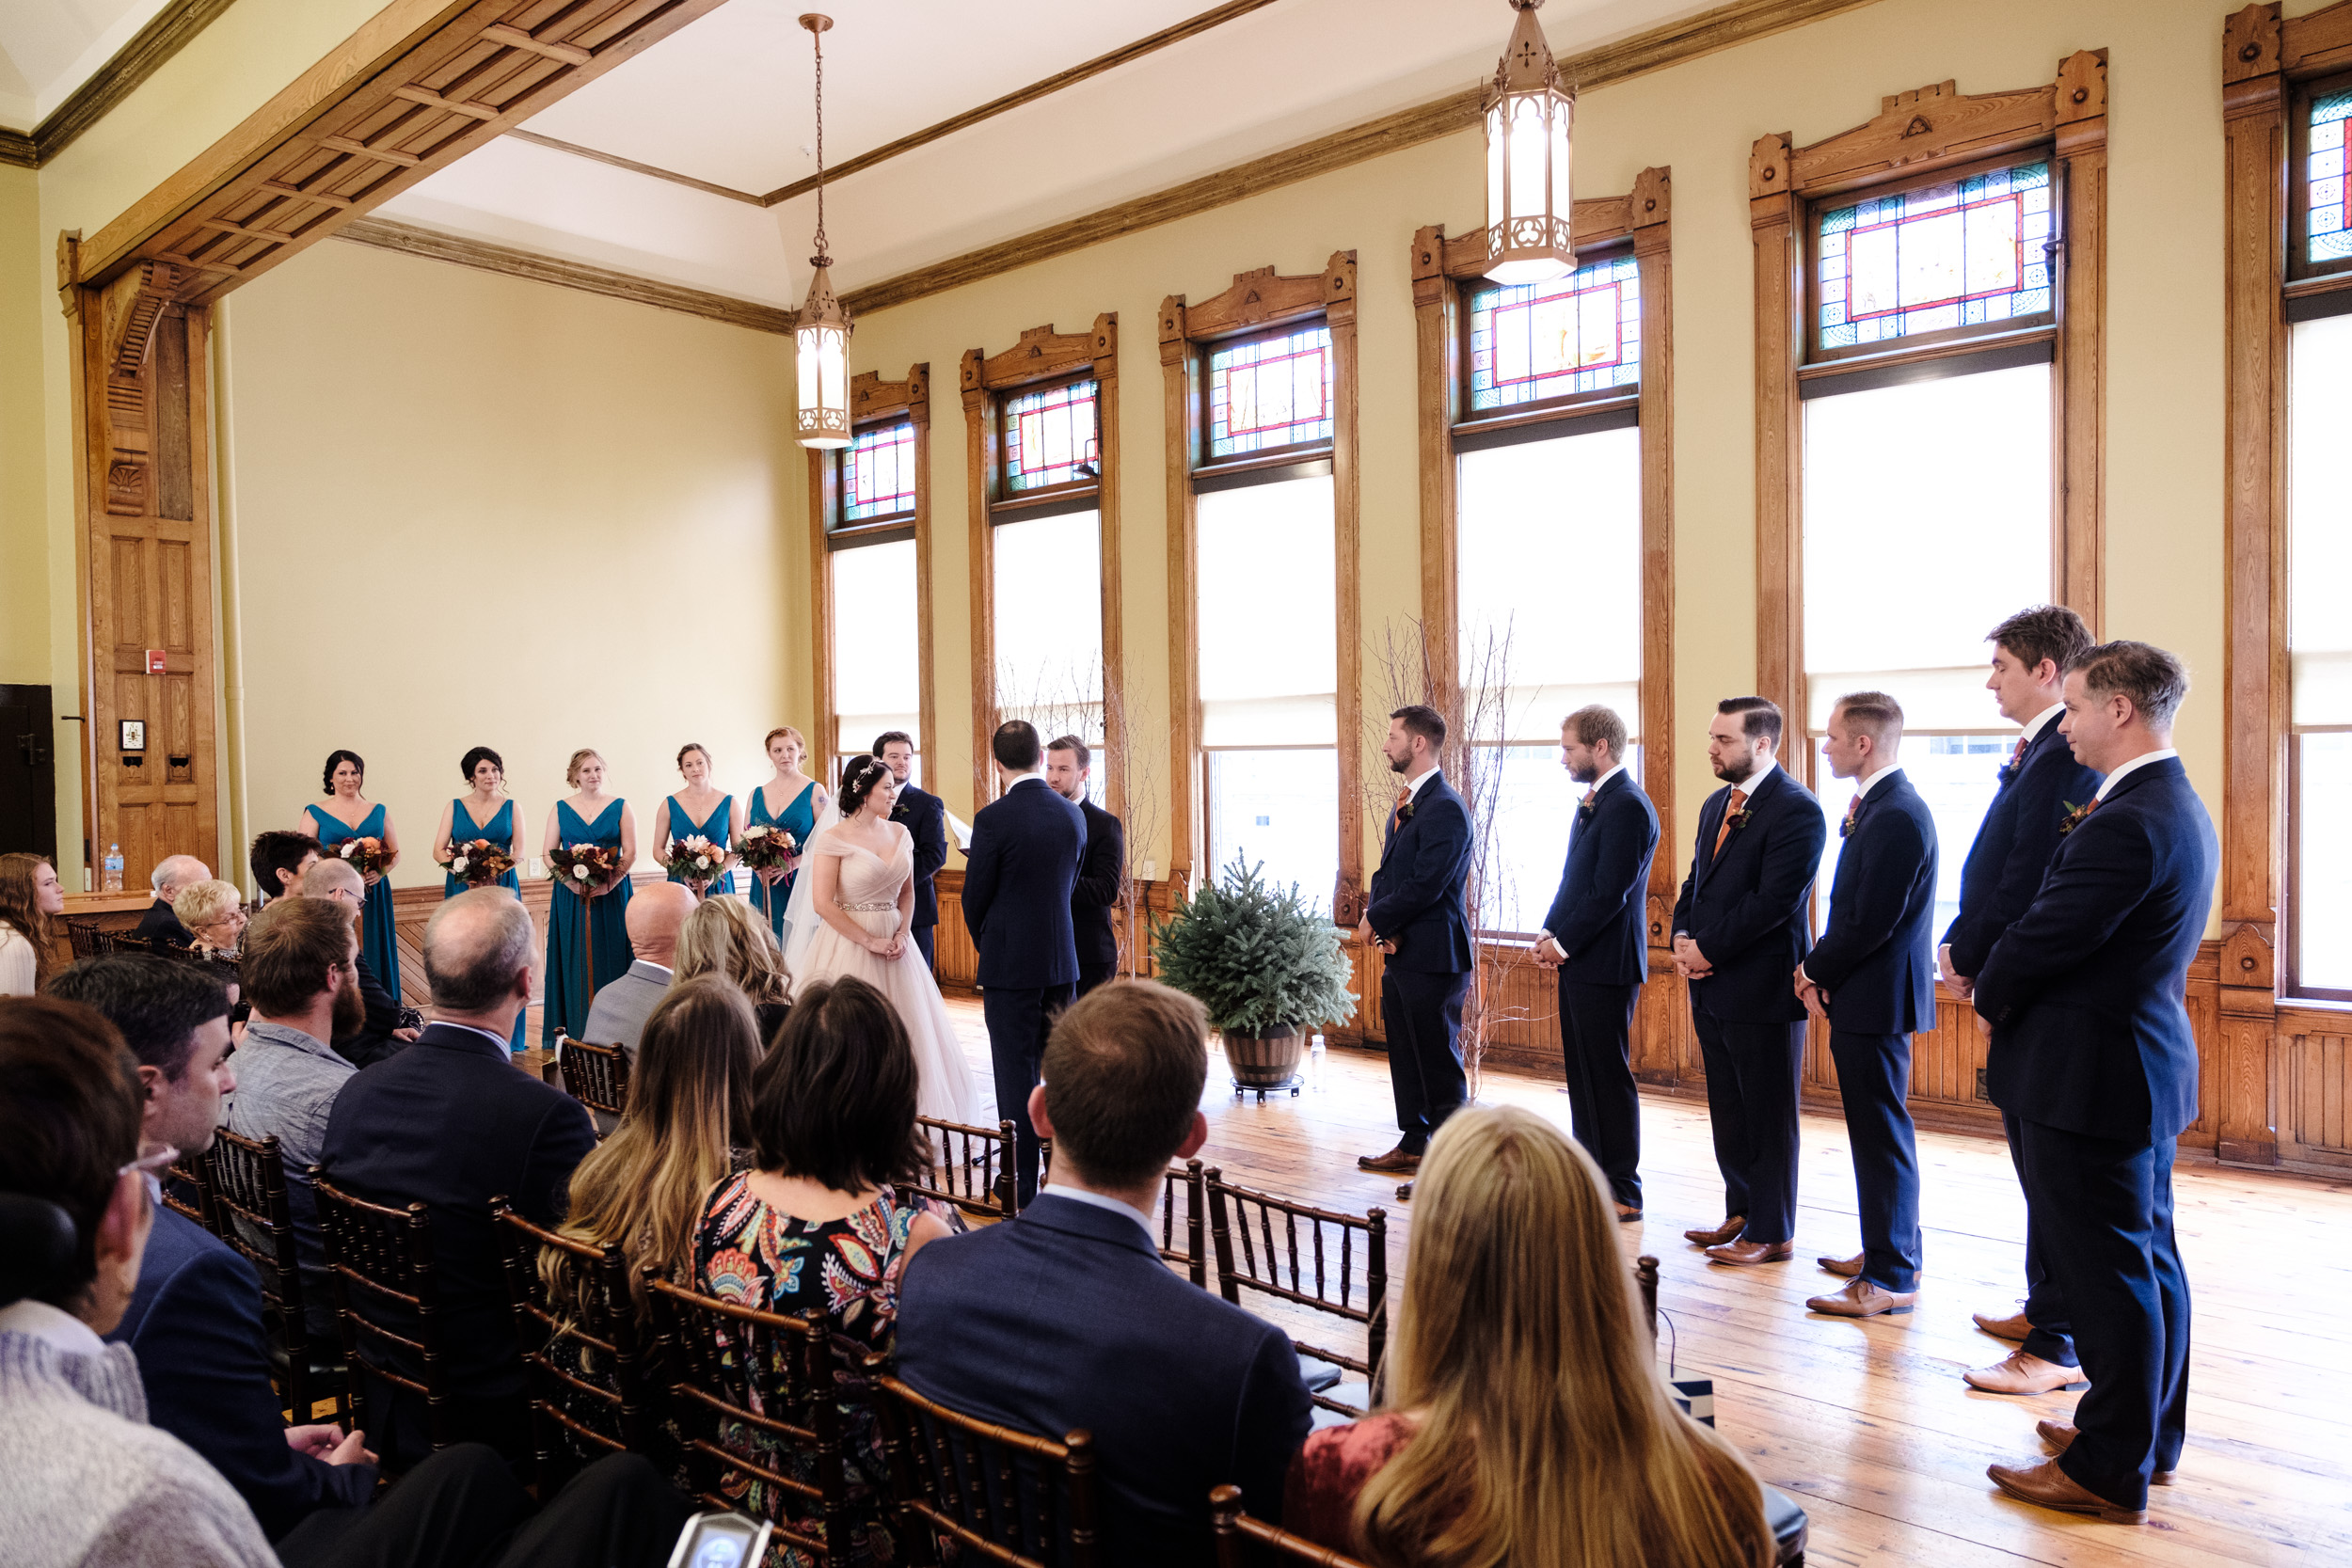 Pabst best place wedding blue suit, orange it fall wisconsin wedding in milwaukee by rockford wedding photographer